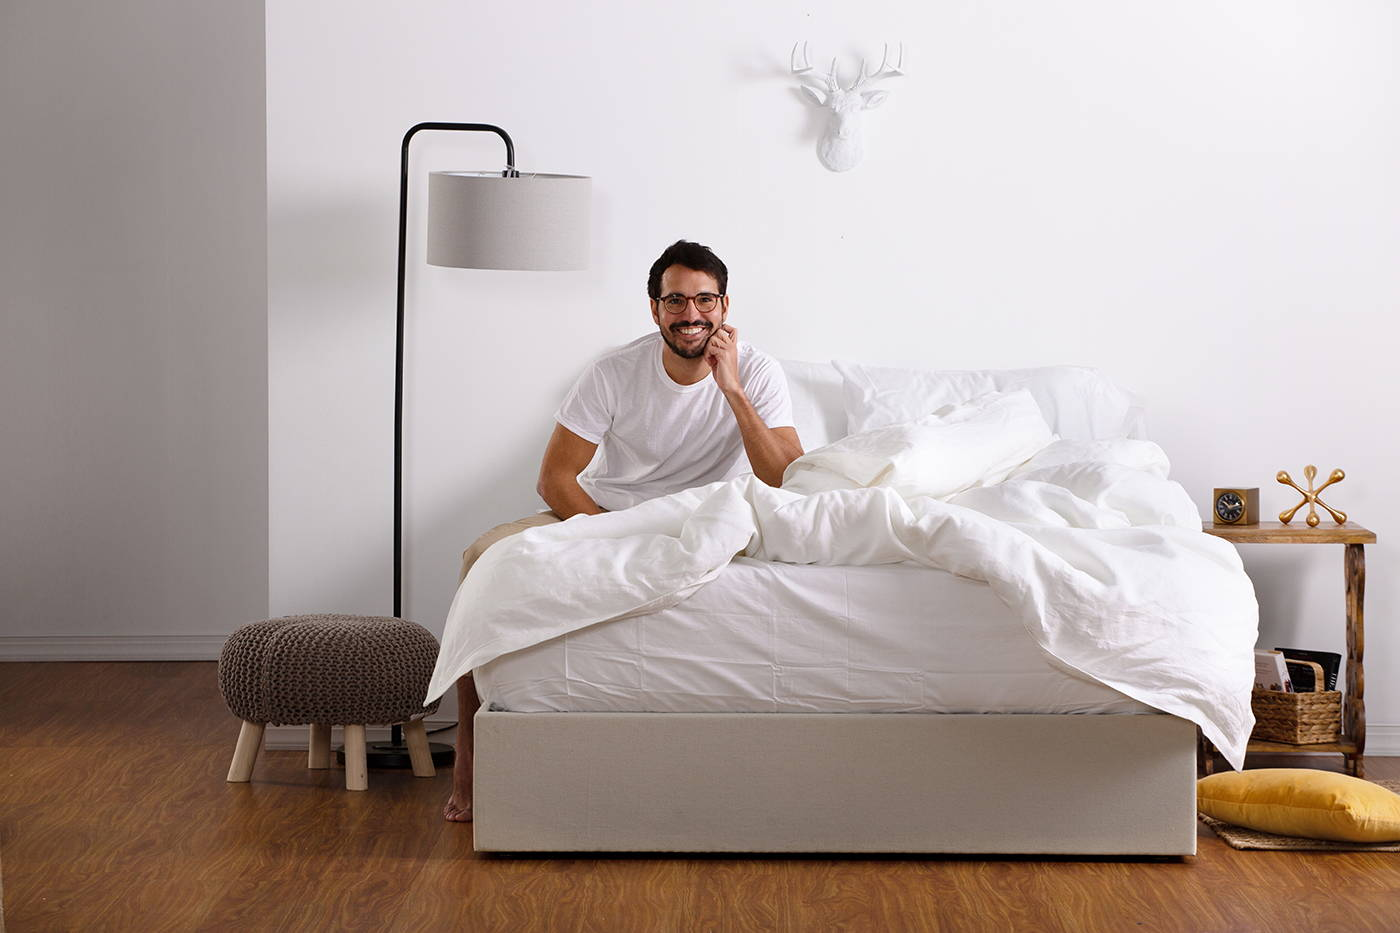 Man in bed with stylishly decorated room. Image